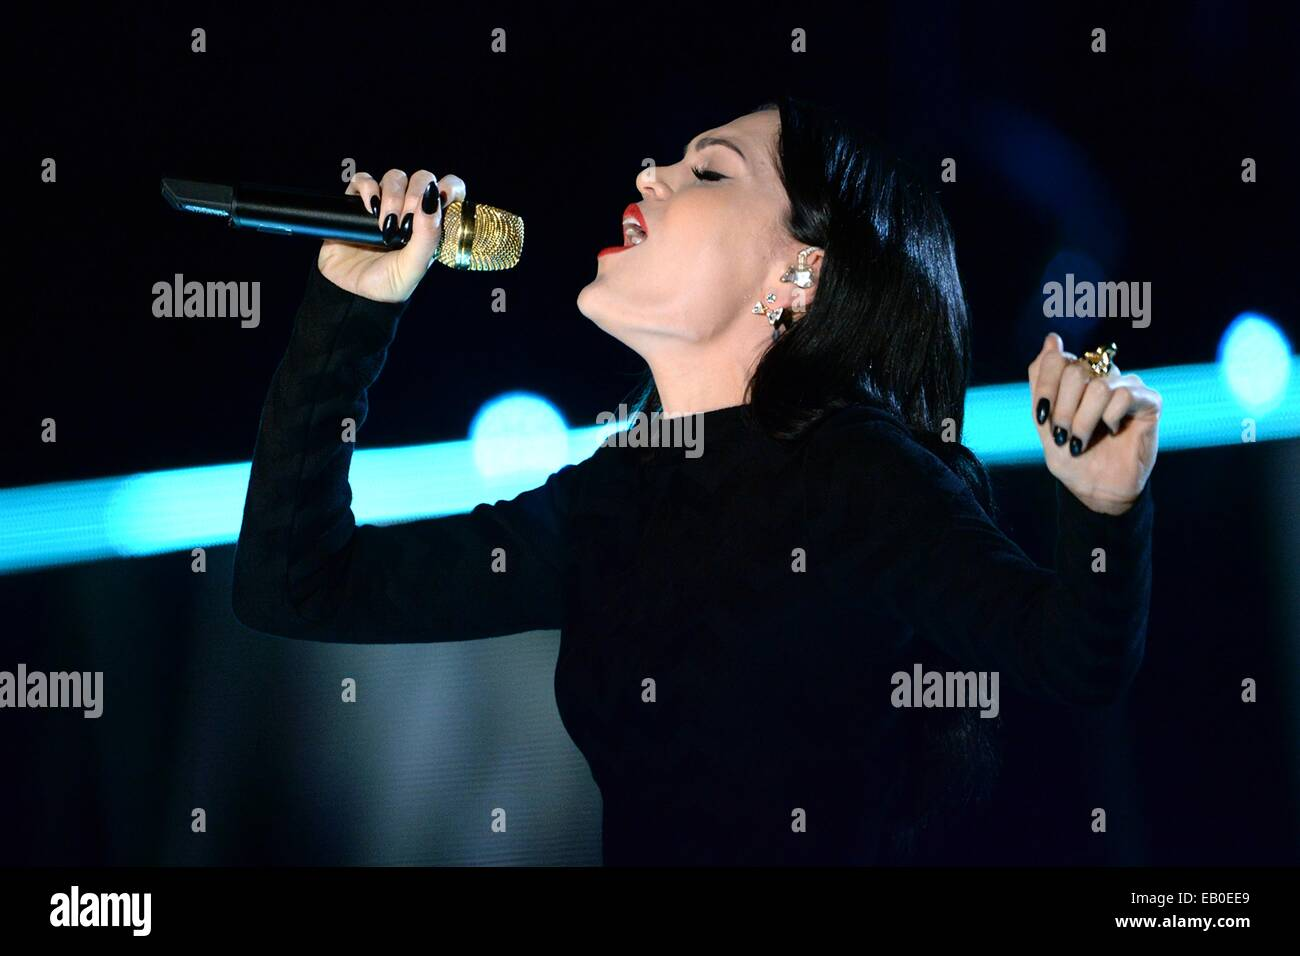 Singer Jessie J. performs during the Concert for Valor November 11, 2014 in Washington, D.C. - Stock Image